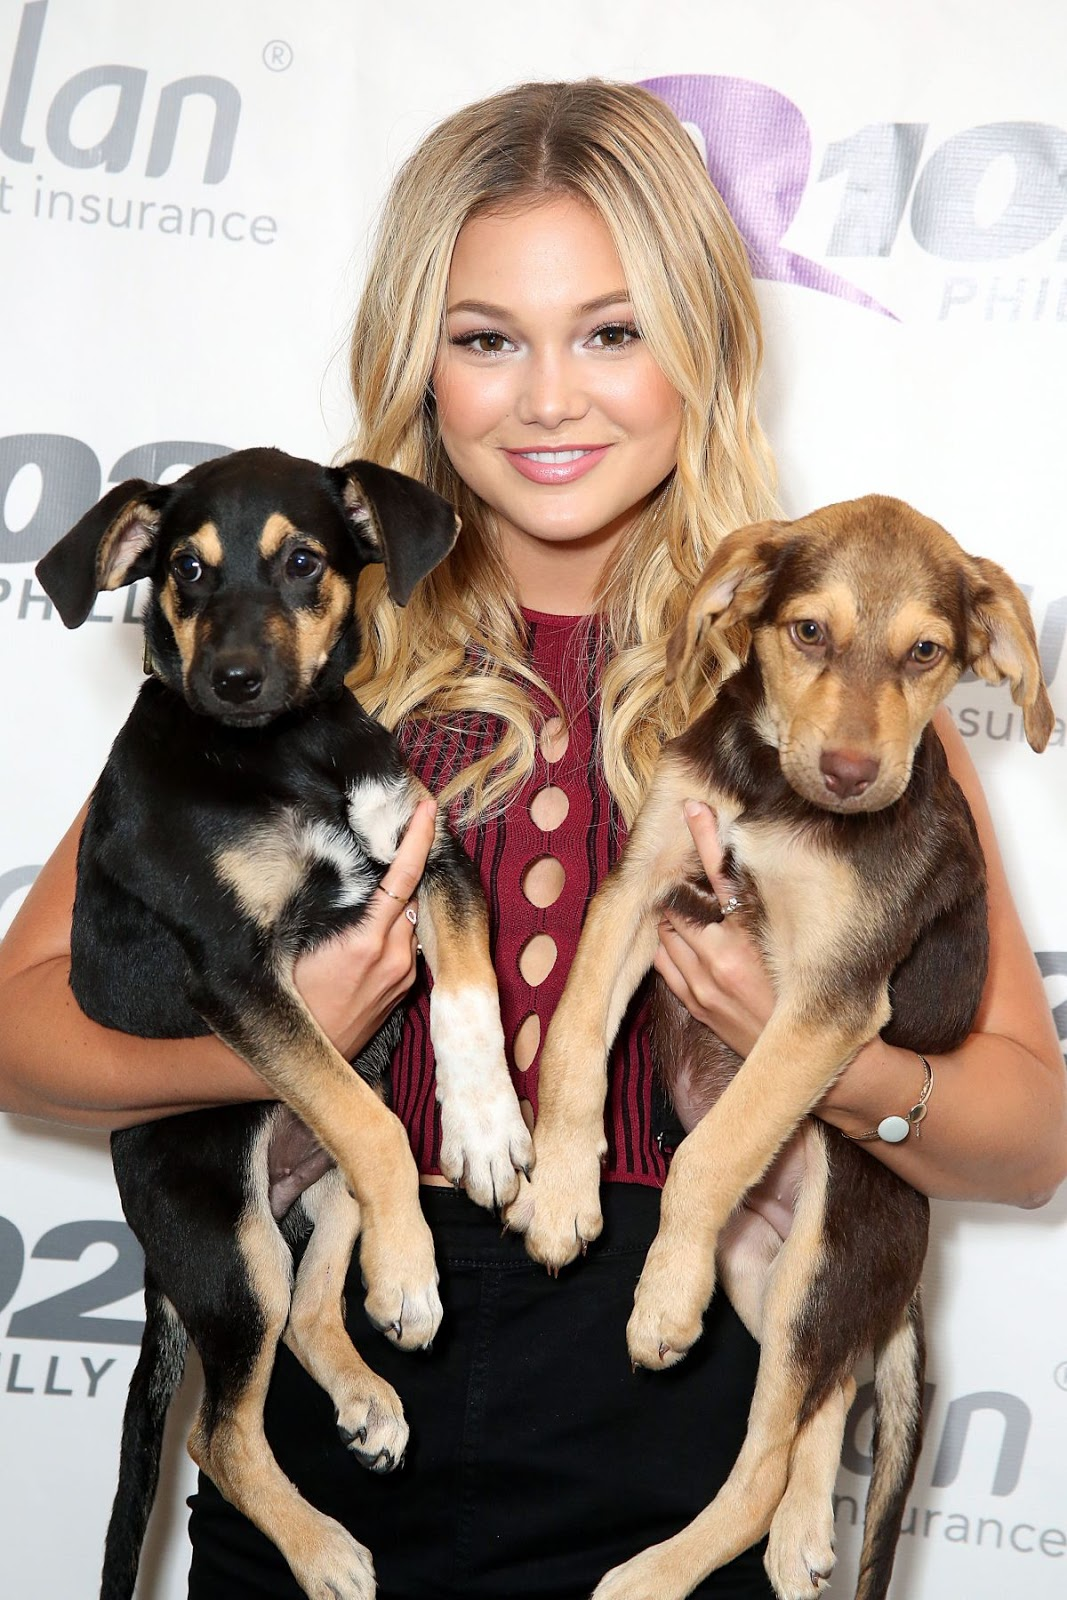 HQ Photos of Olivia Holt at Q102 iHeartRADIO Performance Studio in Bala Cynwyd